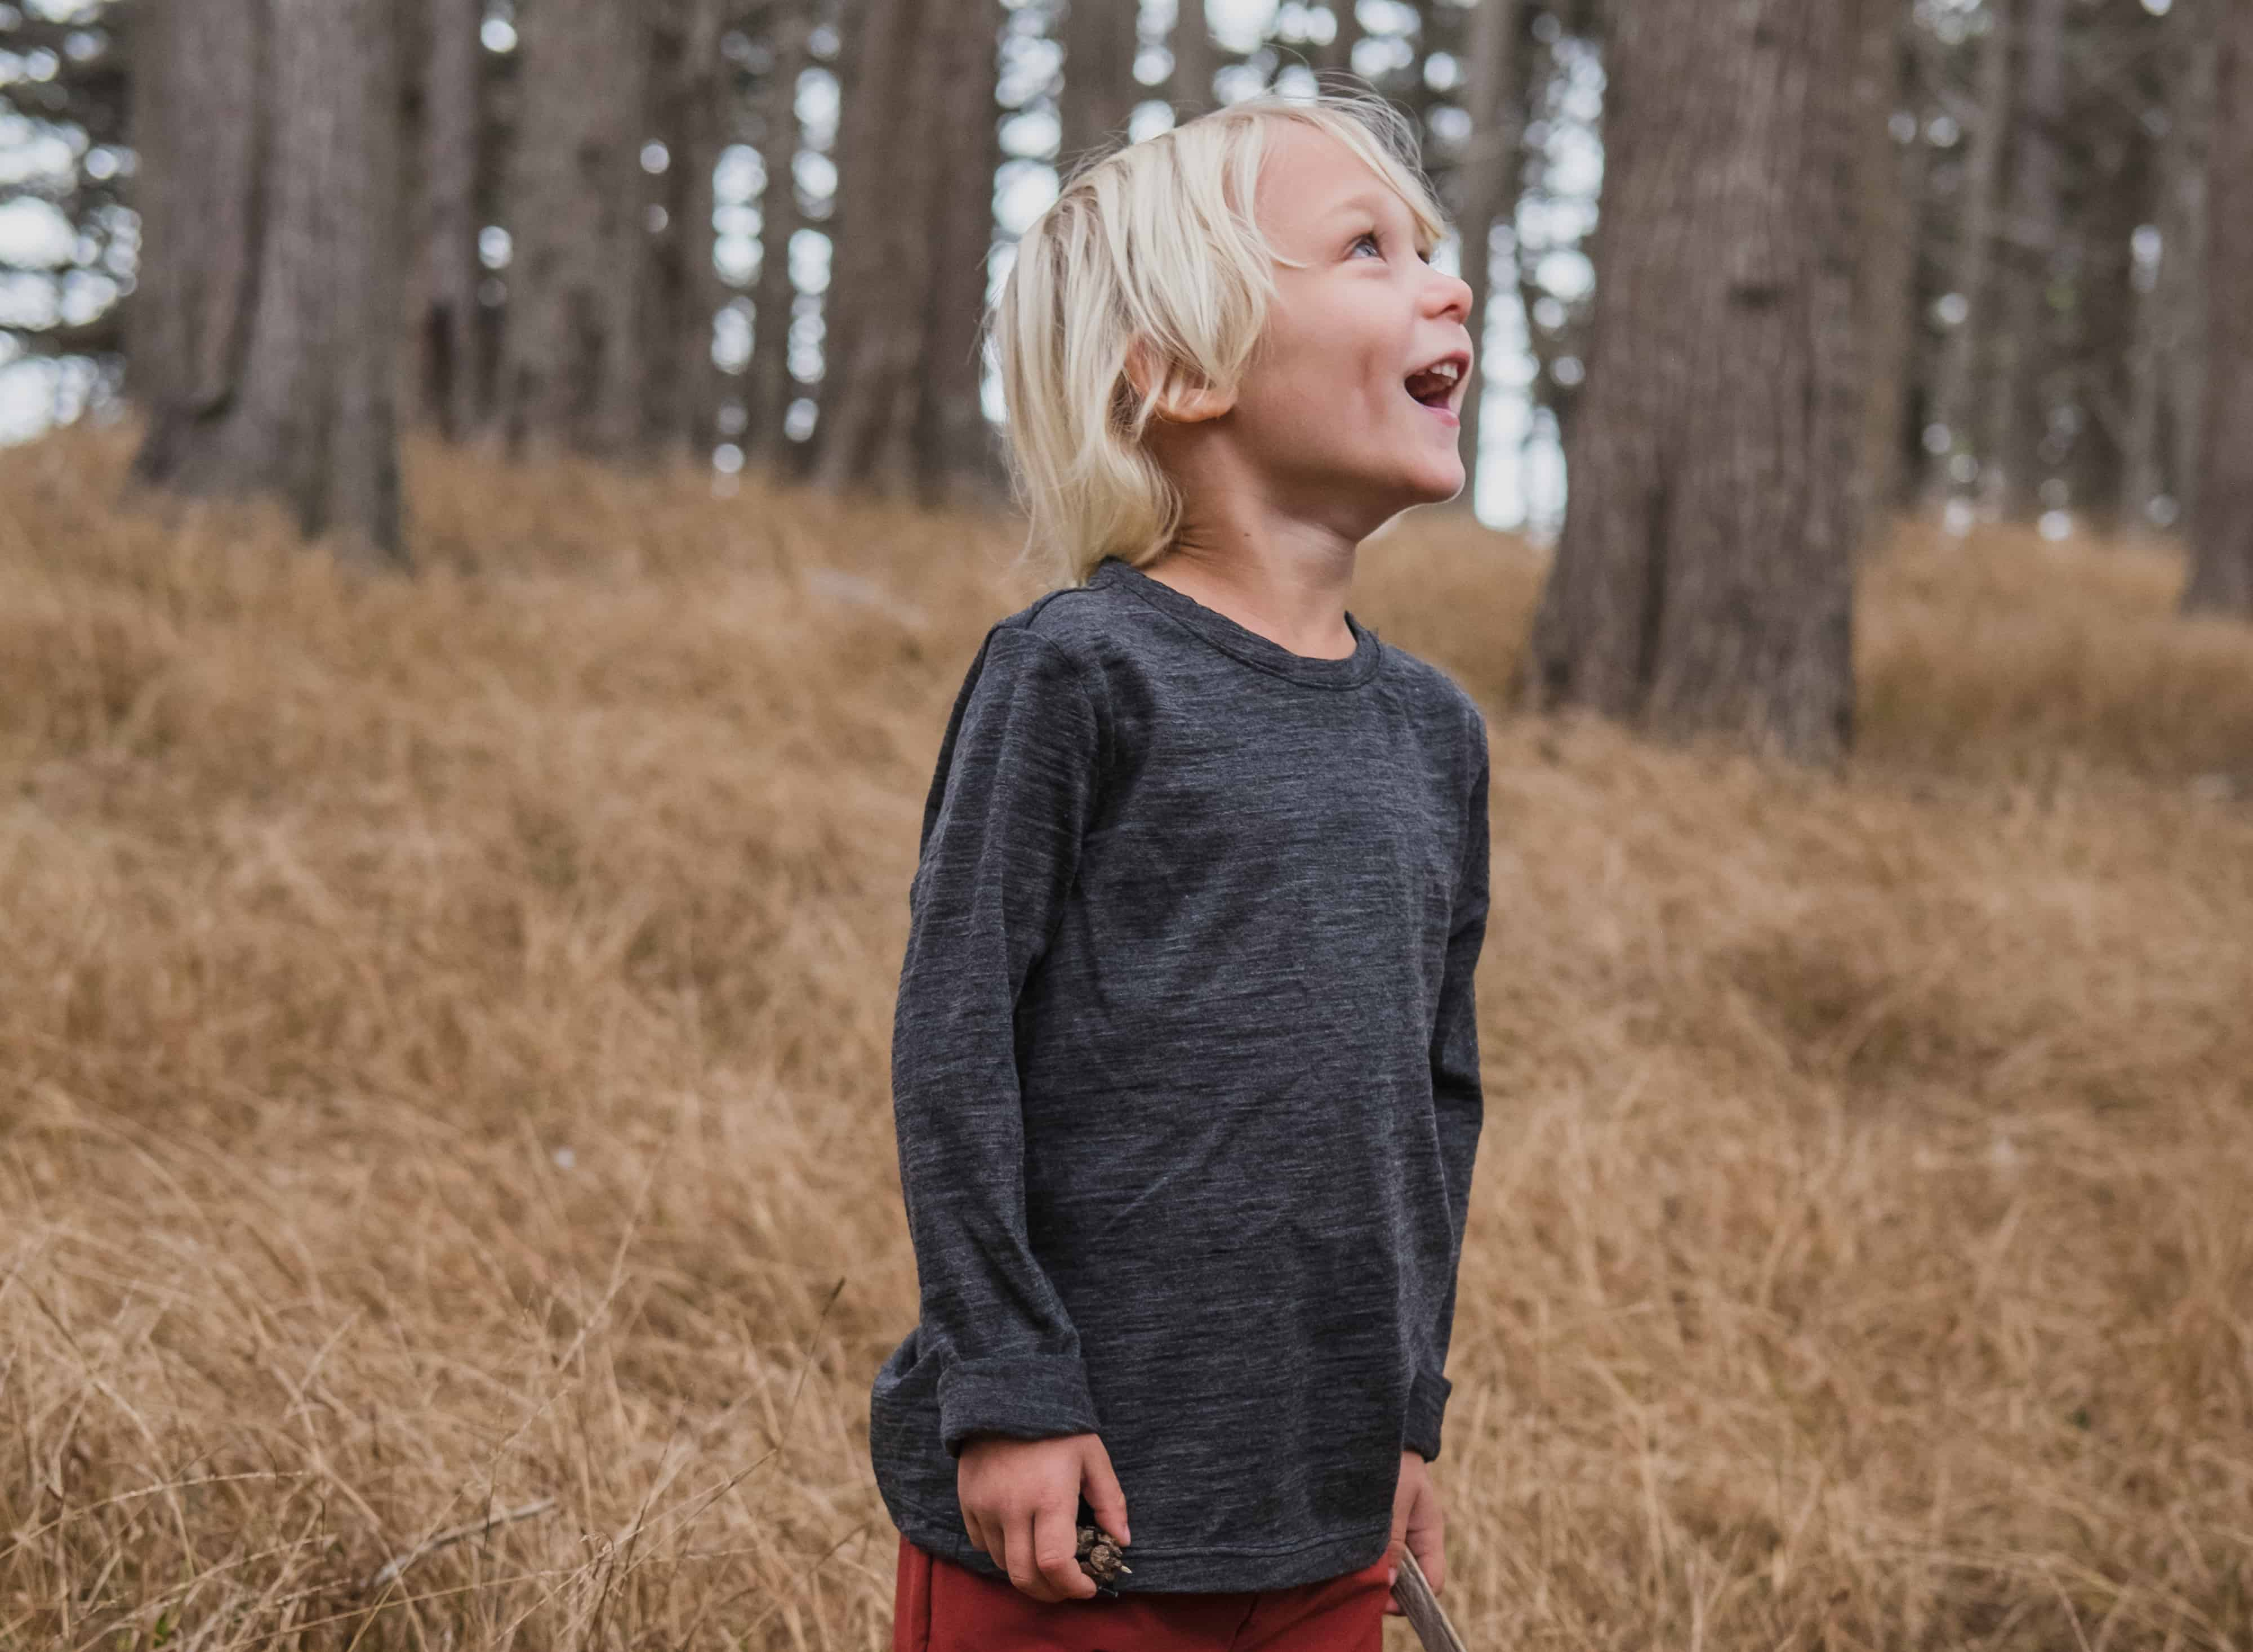 Fjarn Merino Wool Shirt makes a great base layer for kids